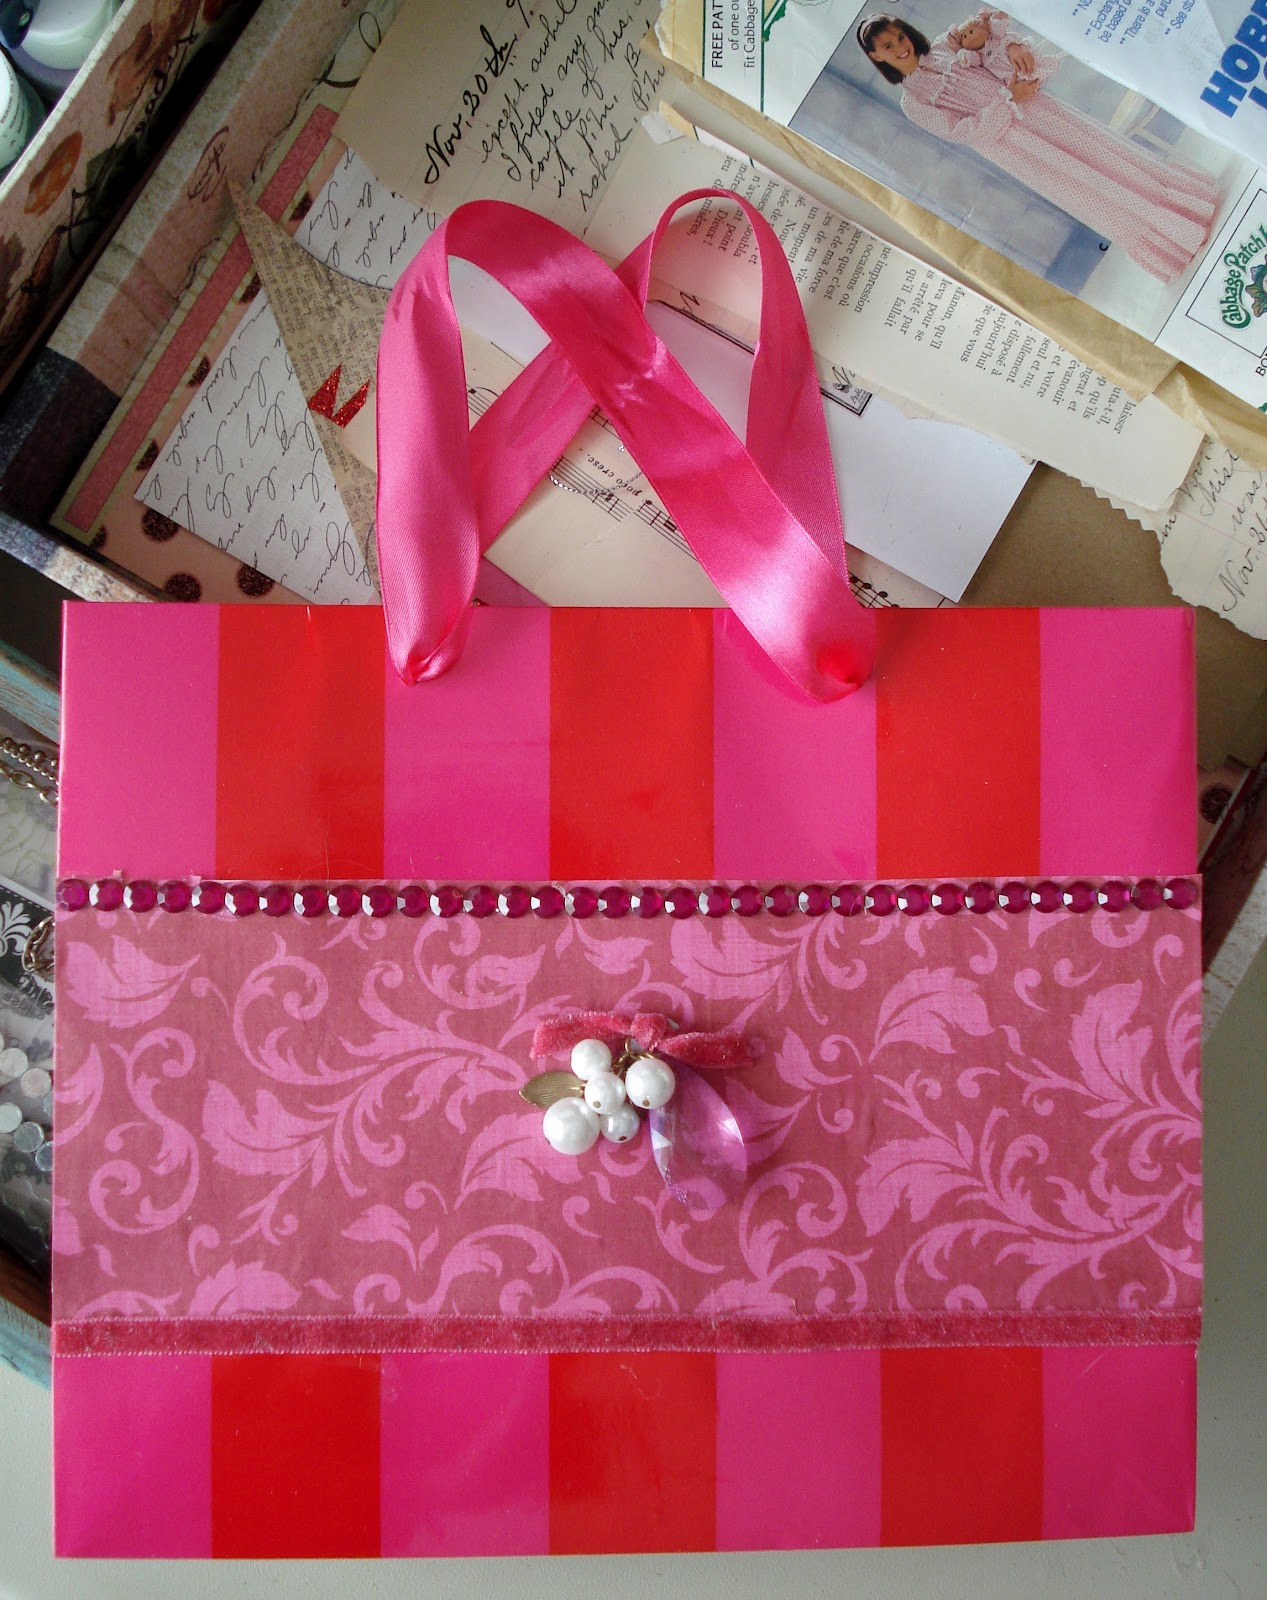 How To Make A Book Cover Out Of A Victoria S Secret Bag : A bit of heaven repurpose and reuse shopping bags